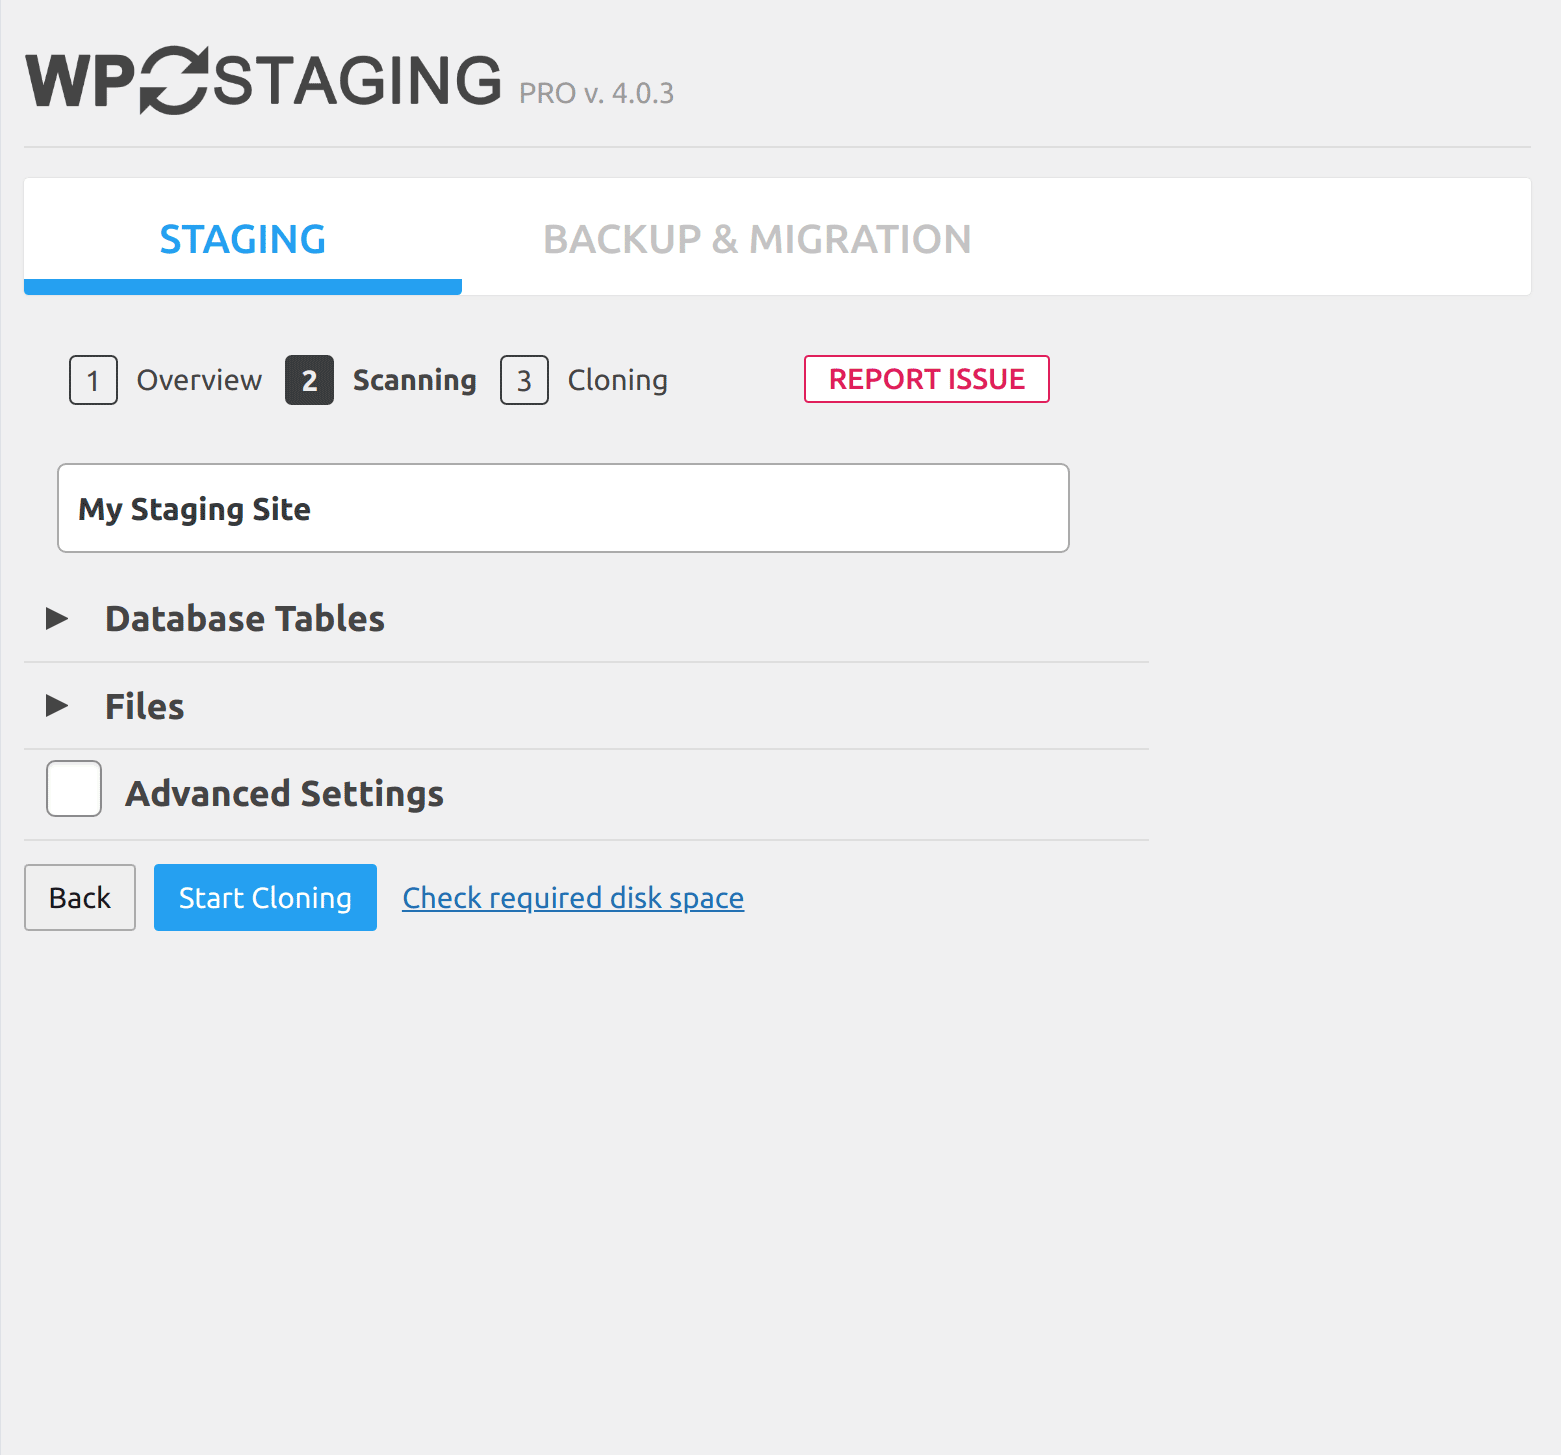 Step 2. Scanning your website for files and database tables